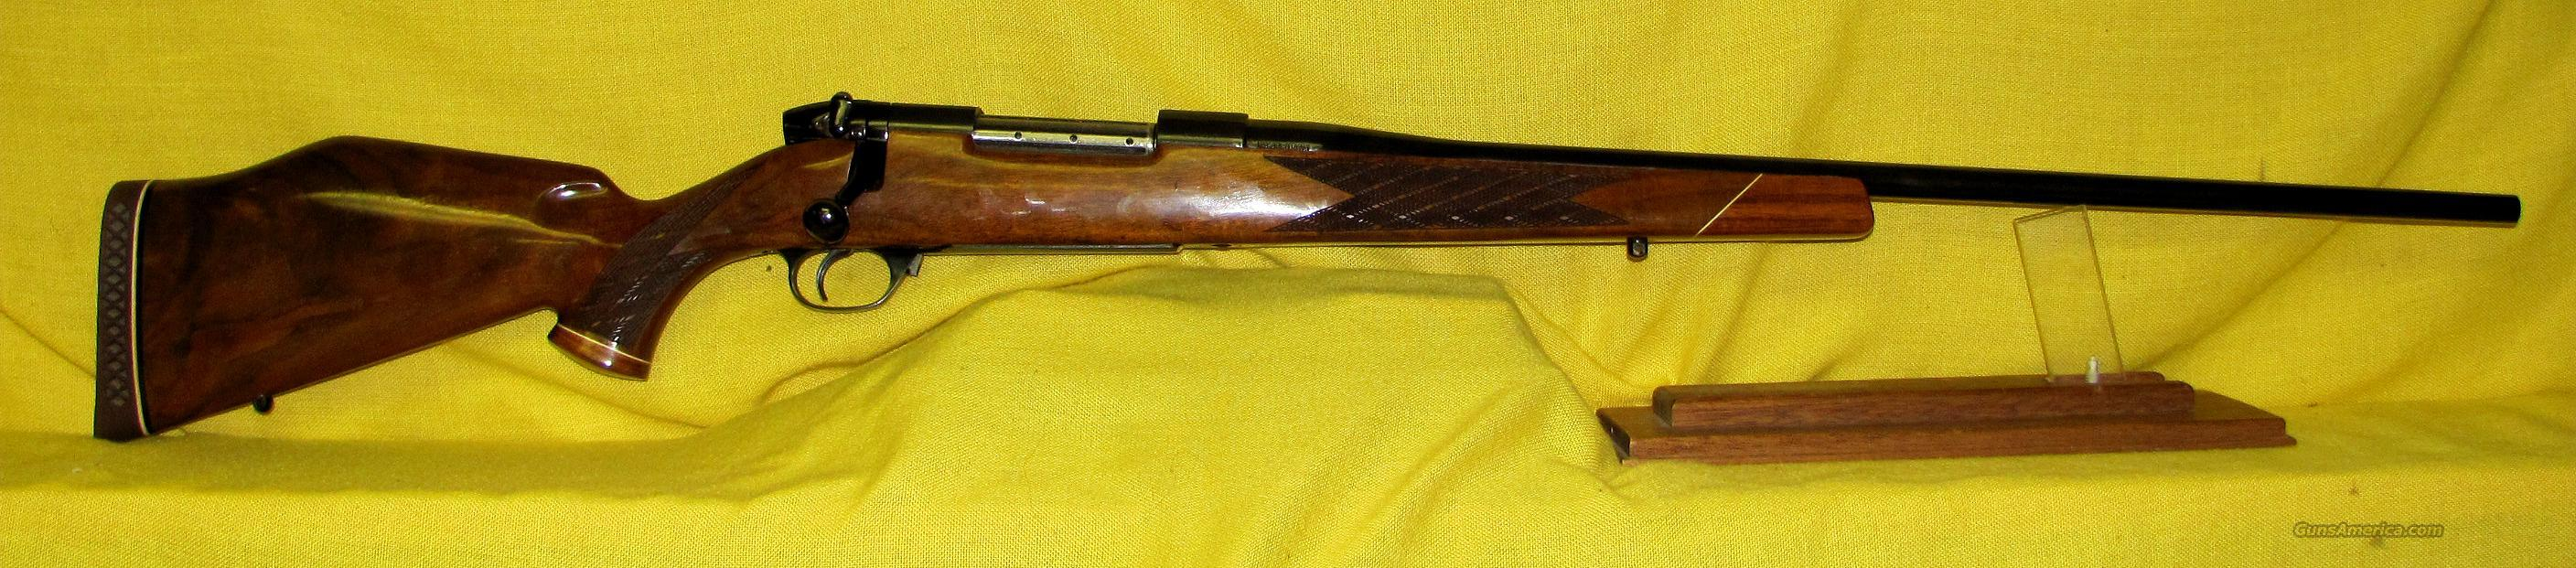 WEATHERBY MARK V GERMANY 30/06  Guns > Rifles > Weatherby Rifles > Sporting